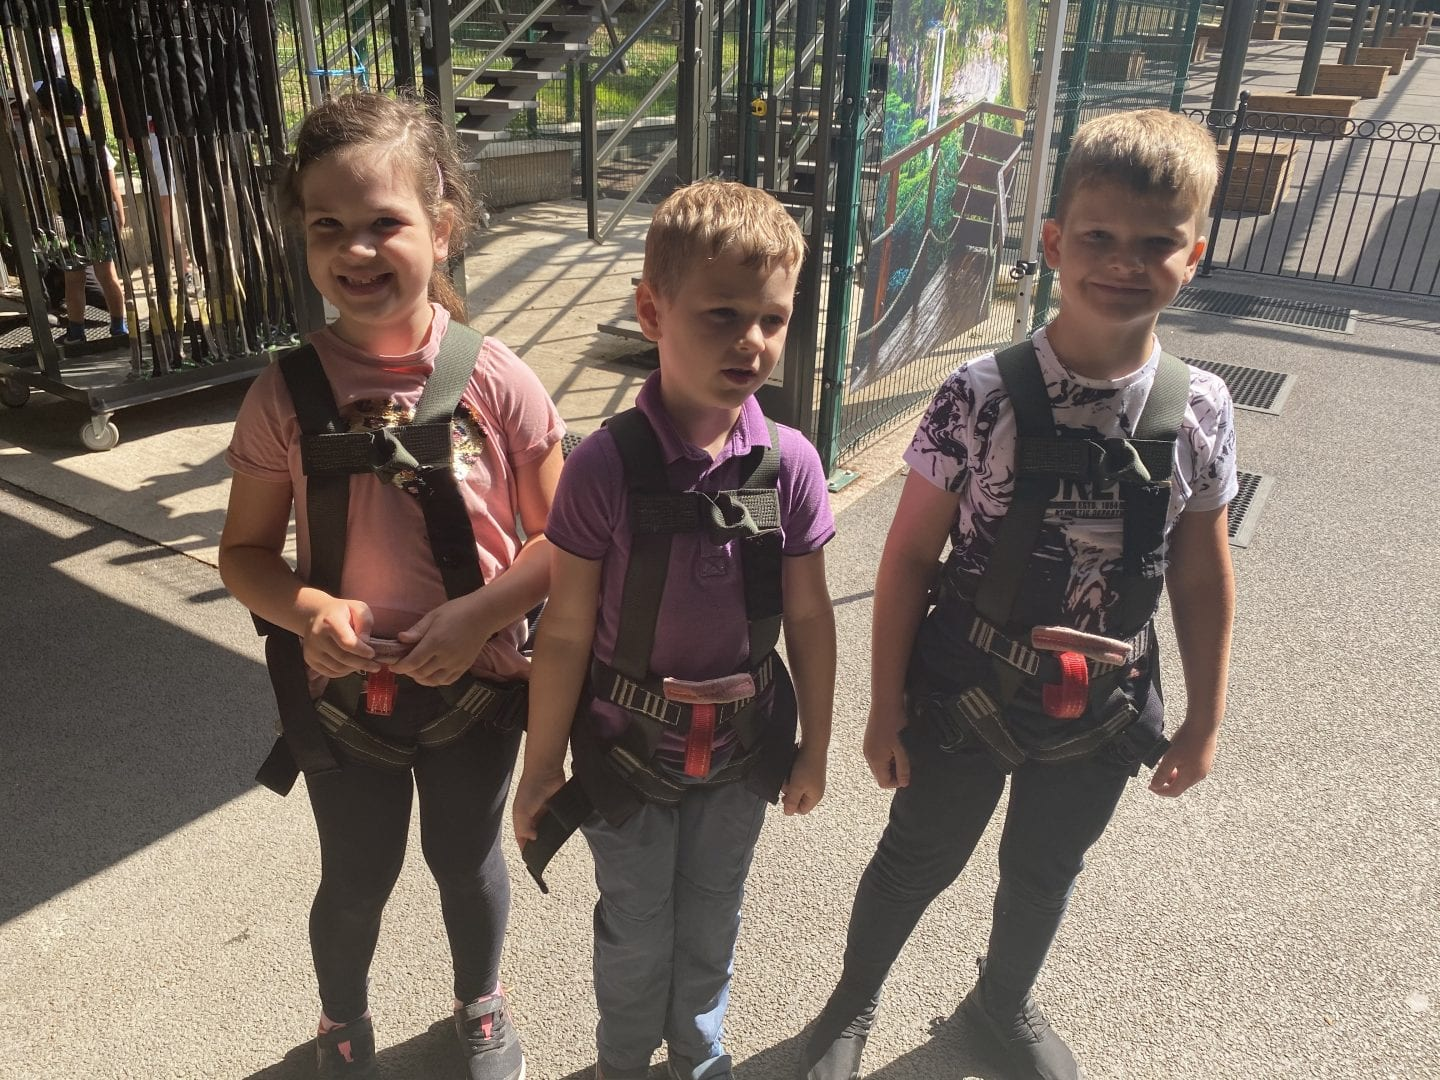 3 children in harnesses ready to go on the Predator high ropes